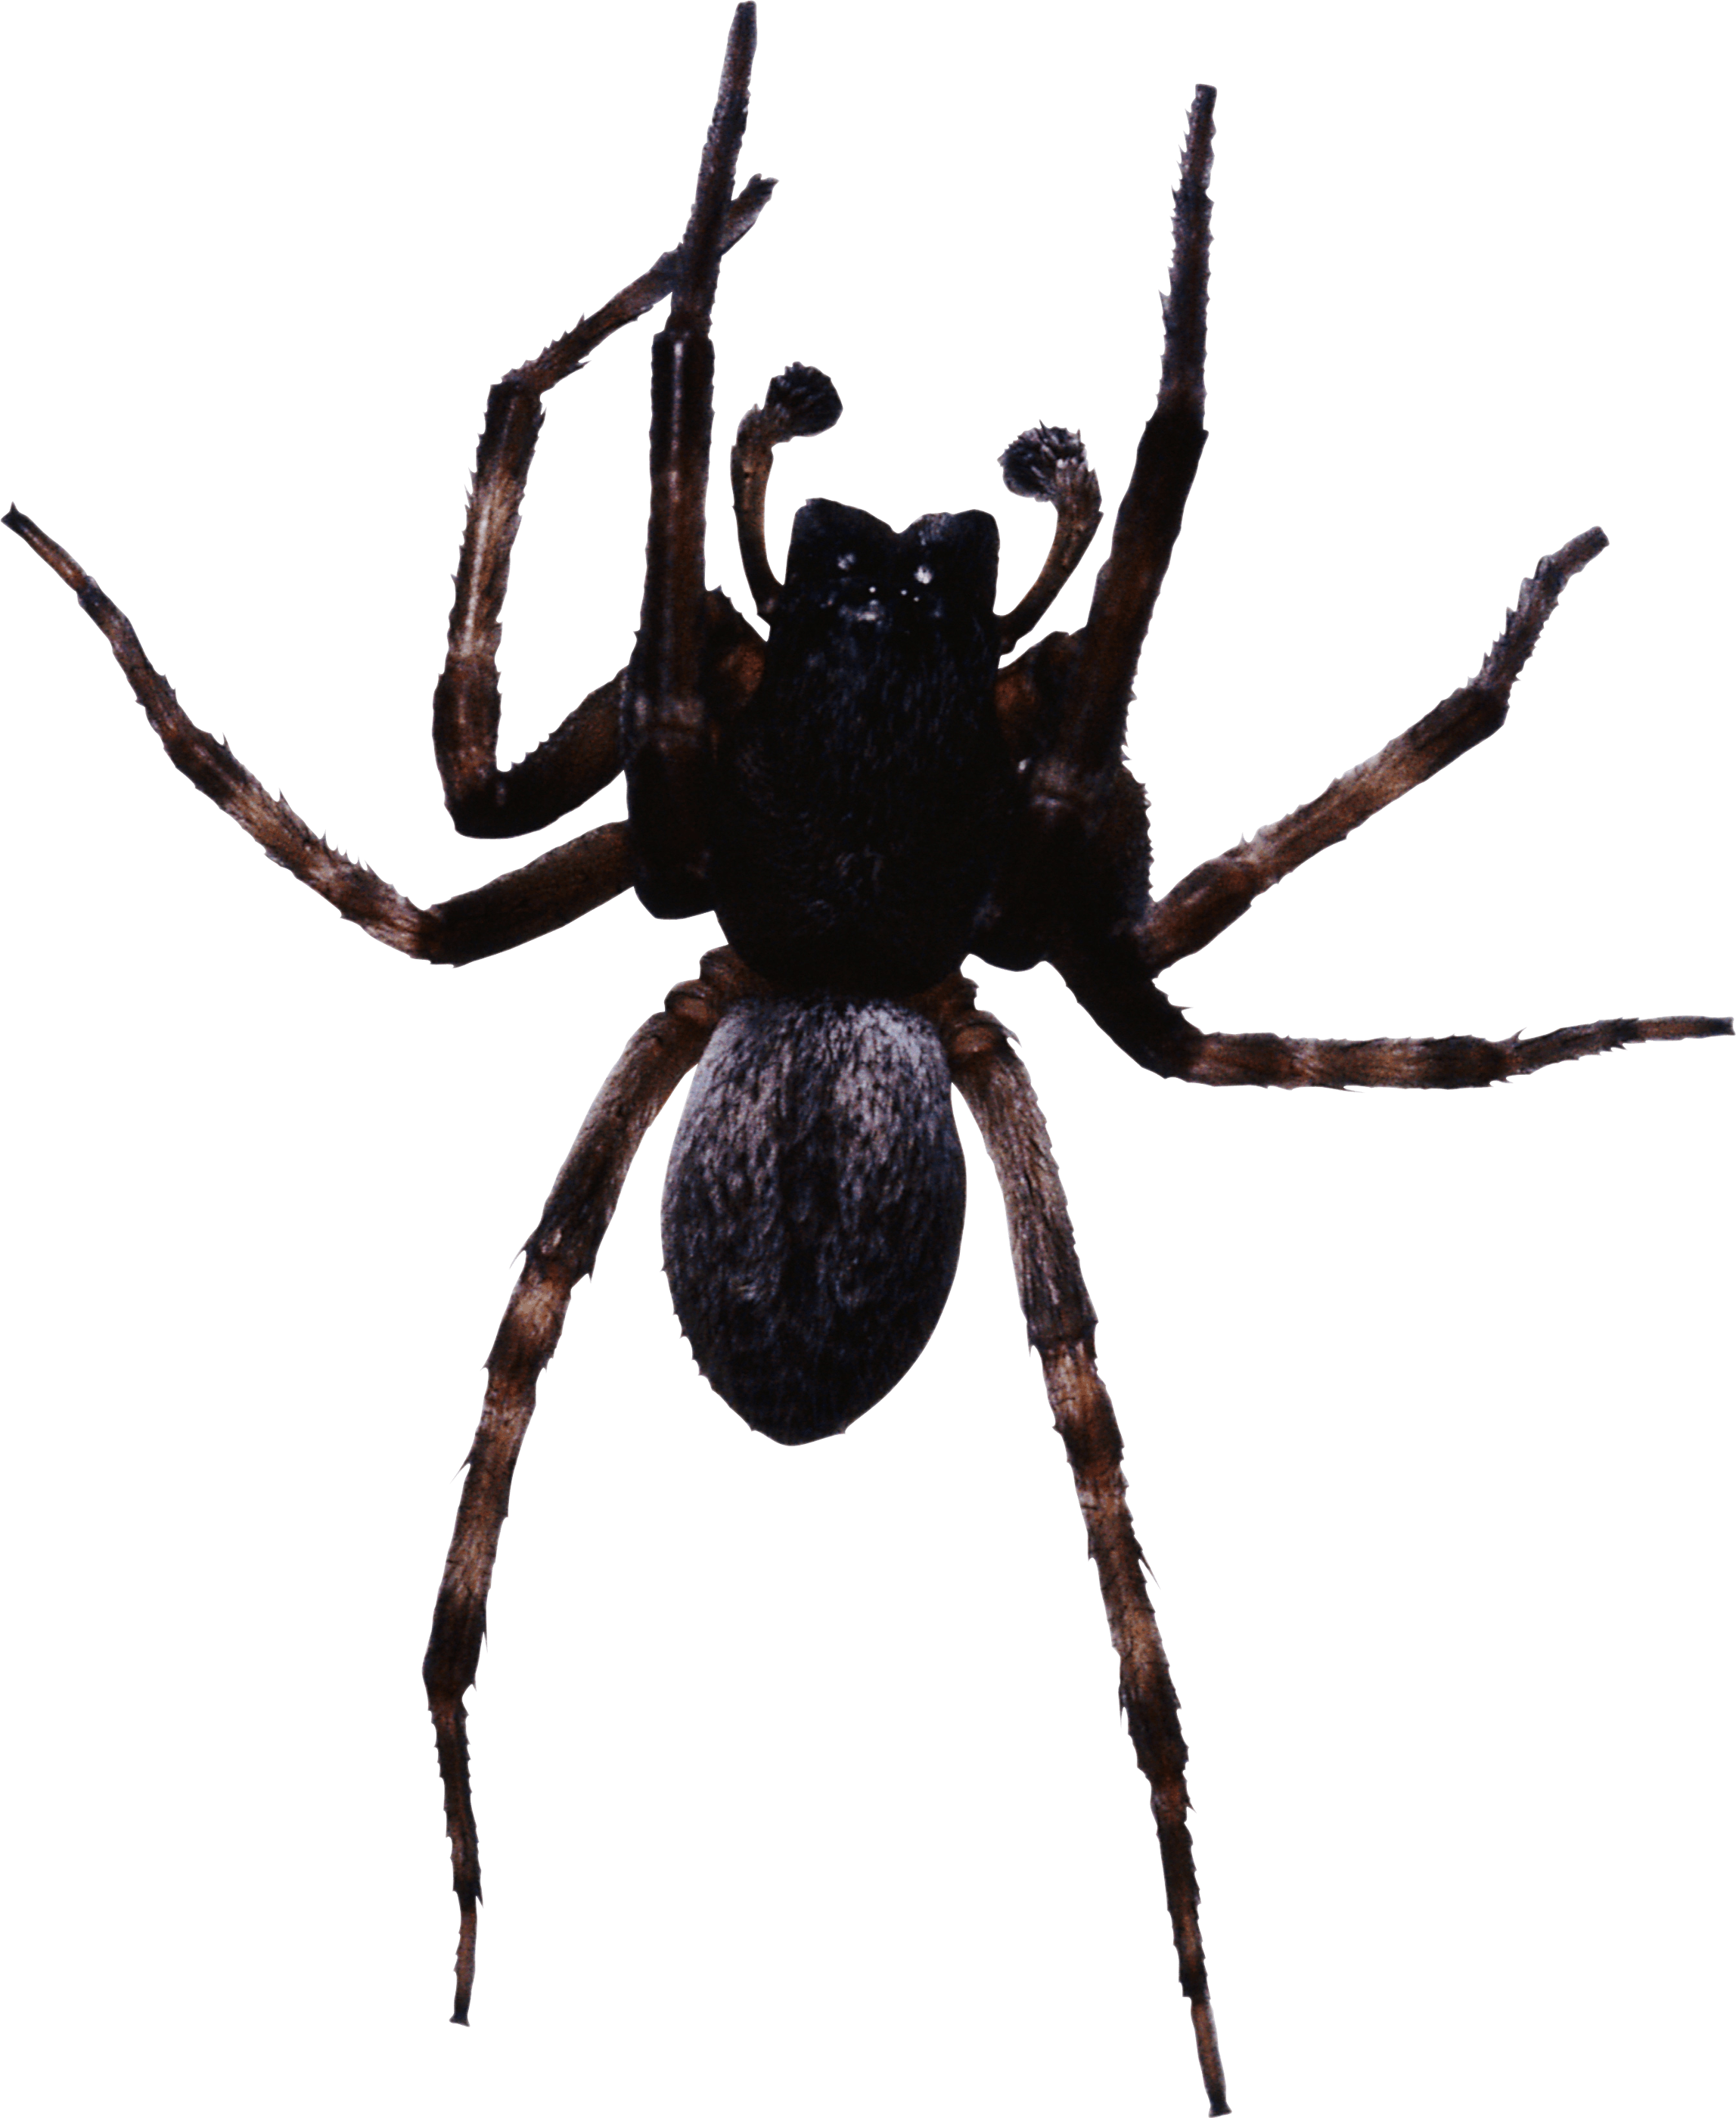 Large Black Spider Transparent Png Stickpng To view the full png size resolution click on any of the below image thumbnail. stickpng